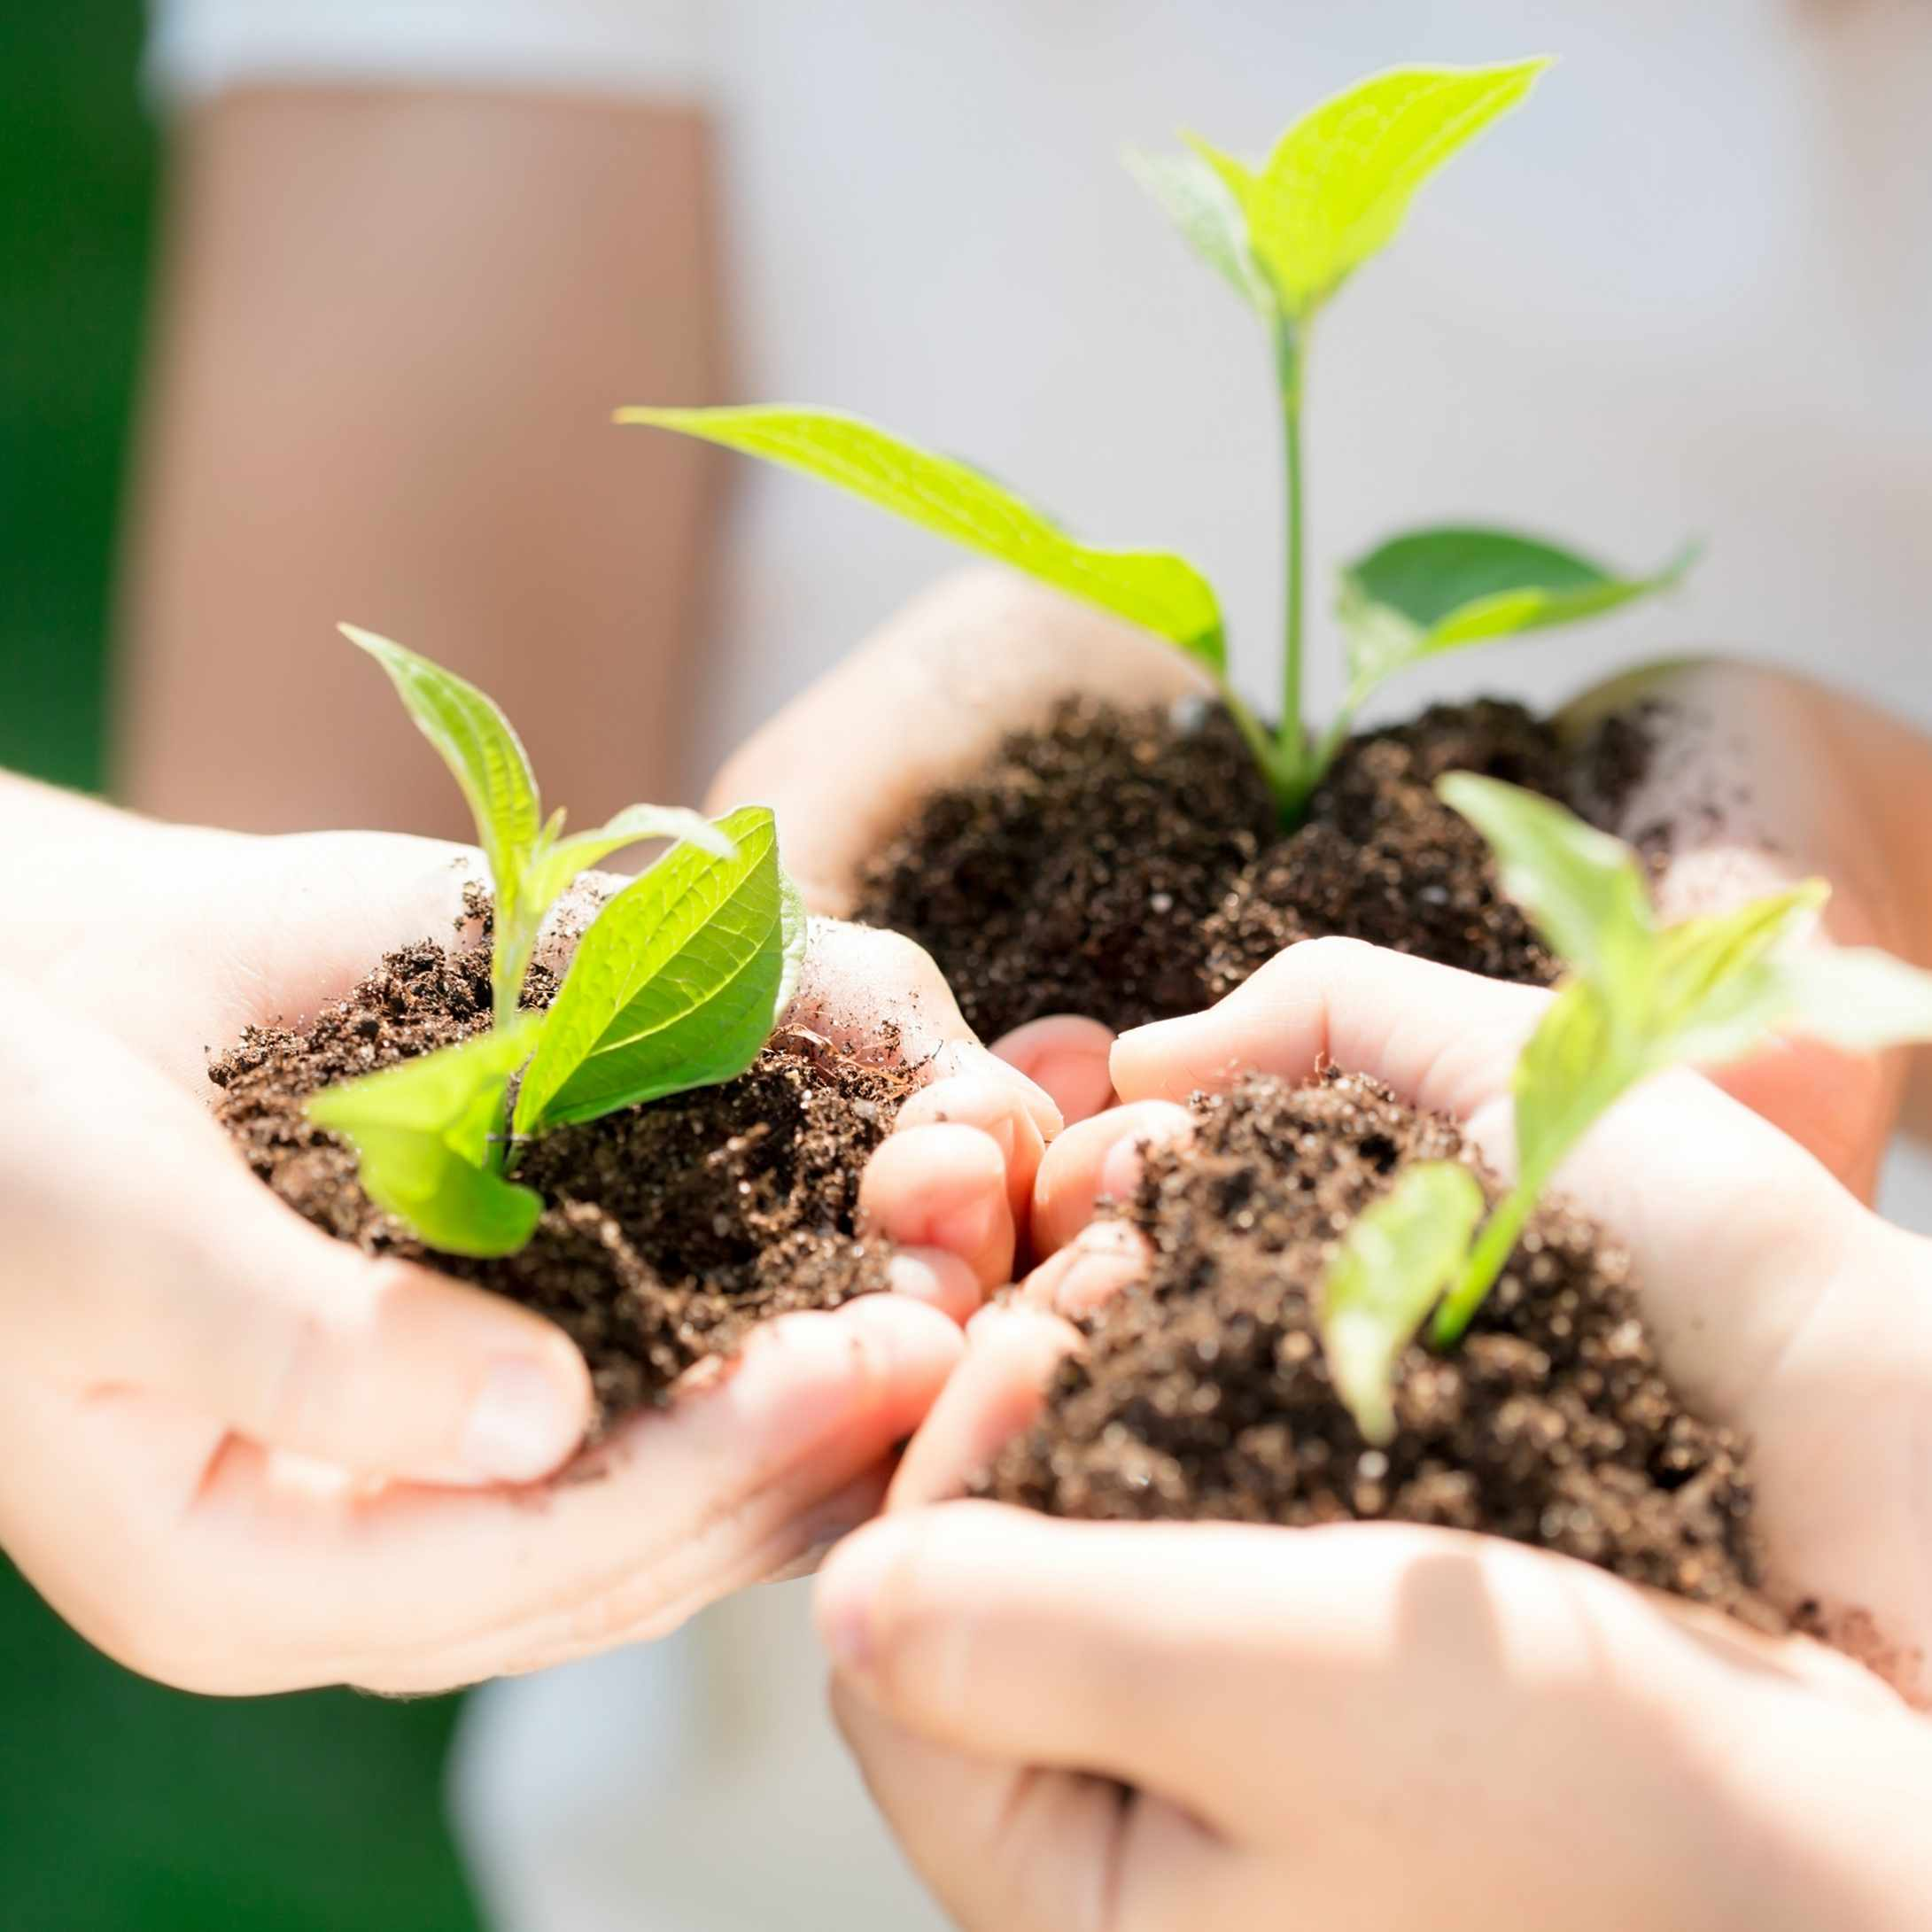 children's hands holding green plants and dirt in their hands, representing new life and environment